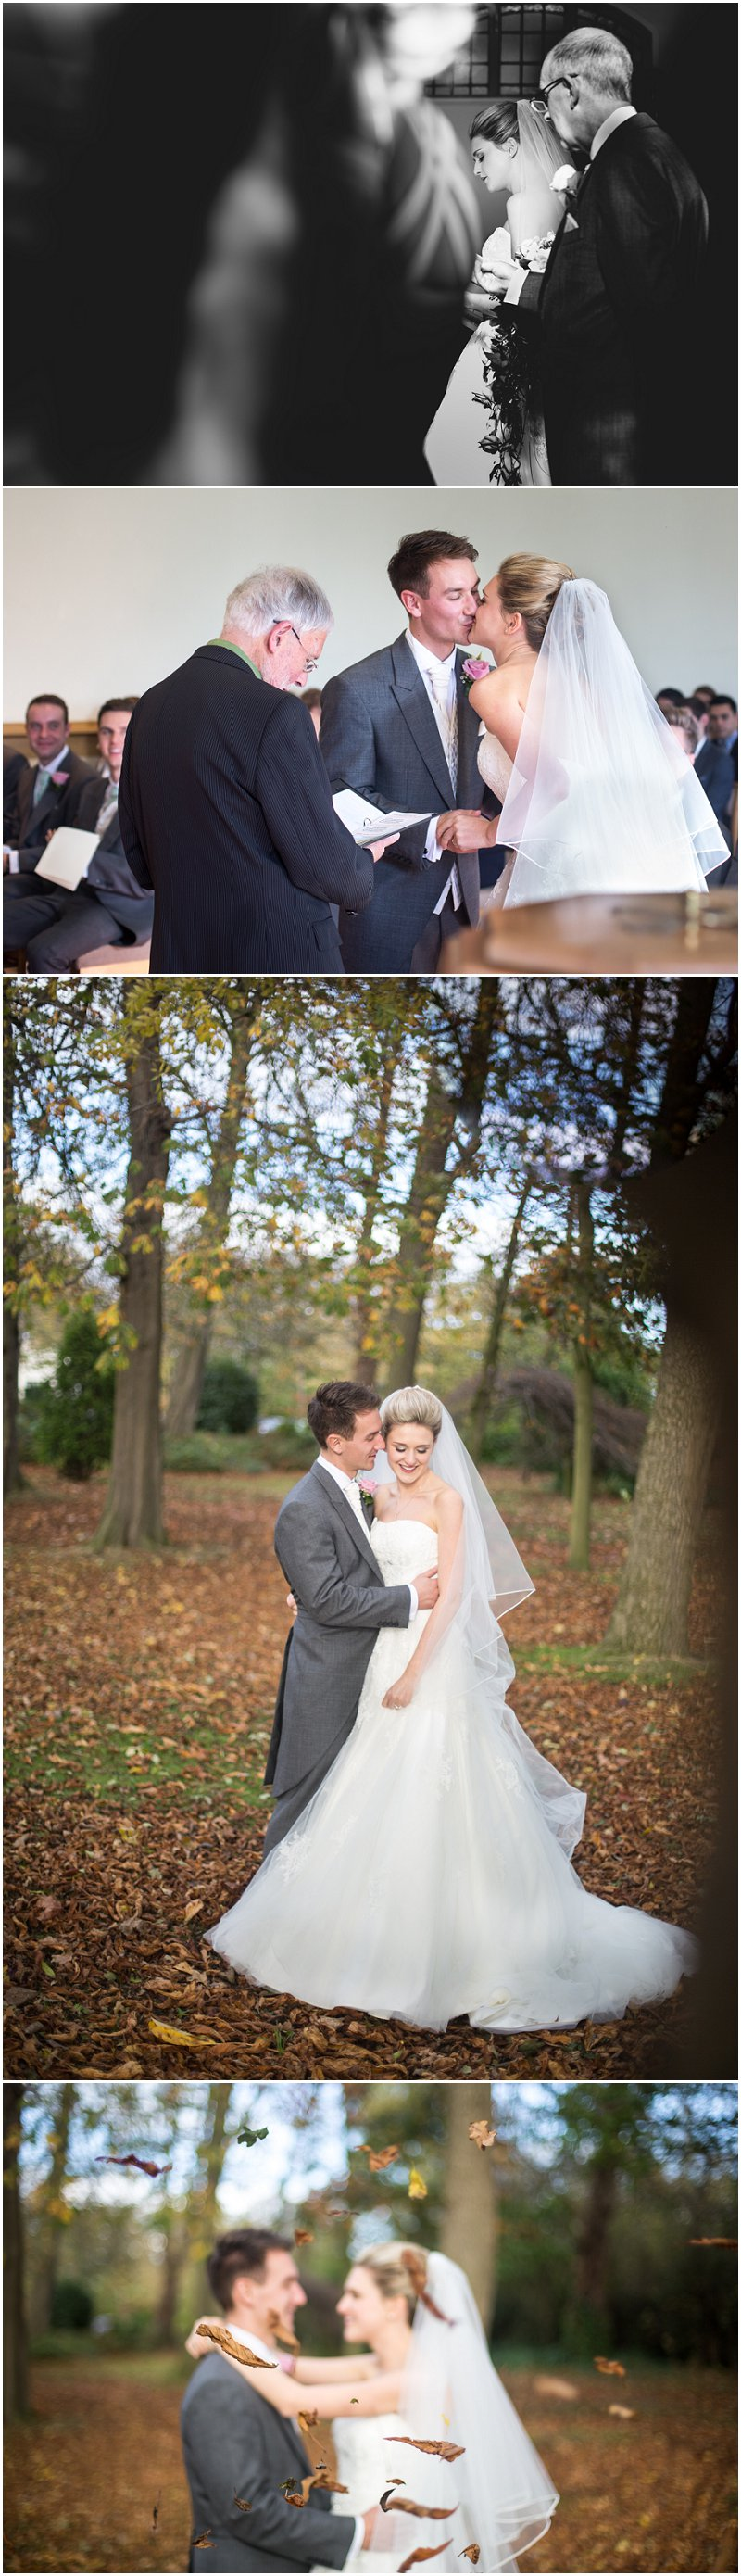 Wedding Photographer Crabwall Manor Chester